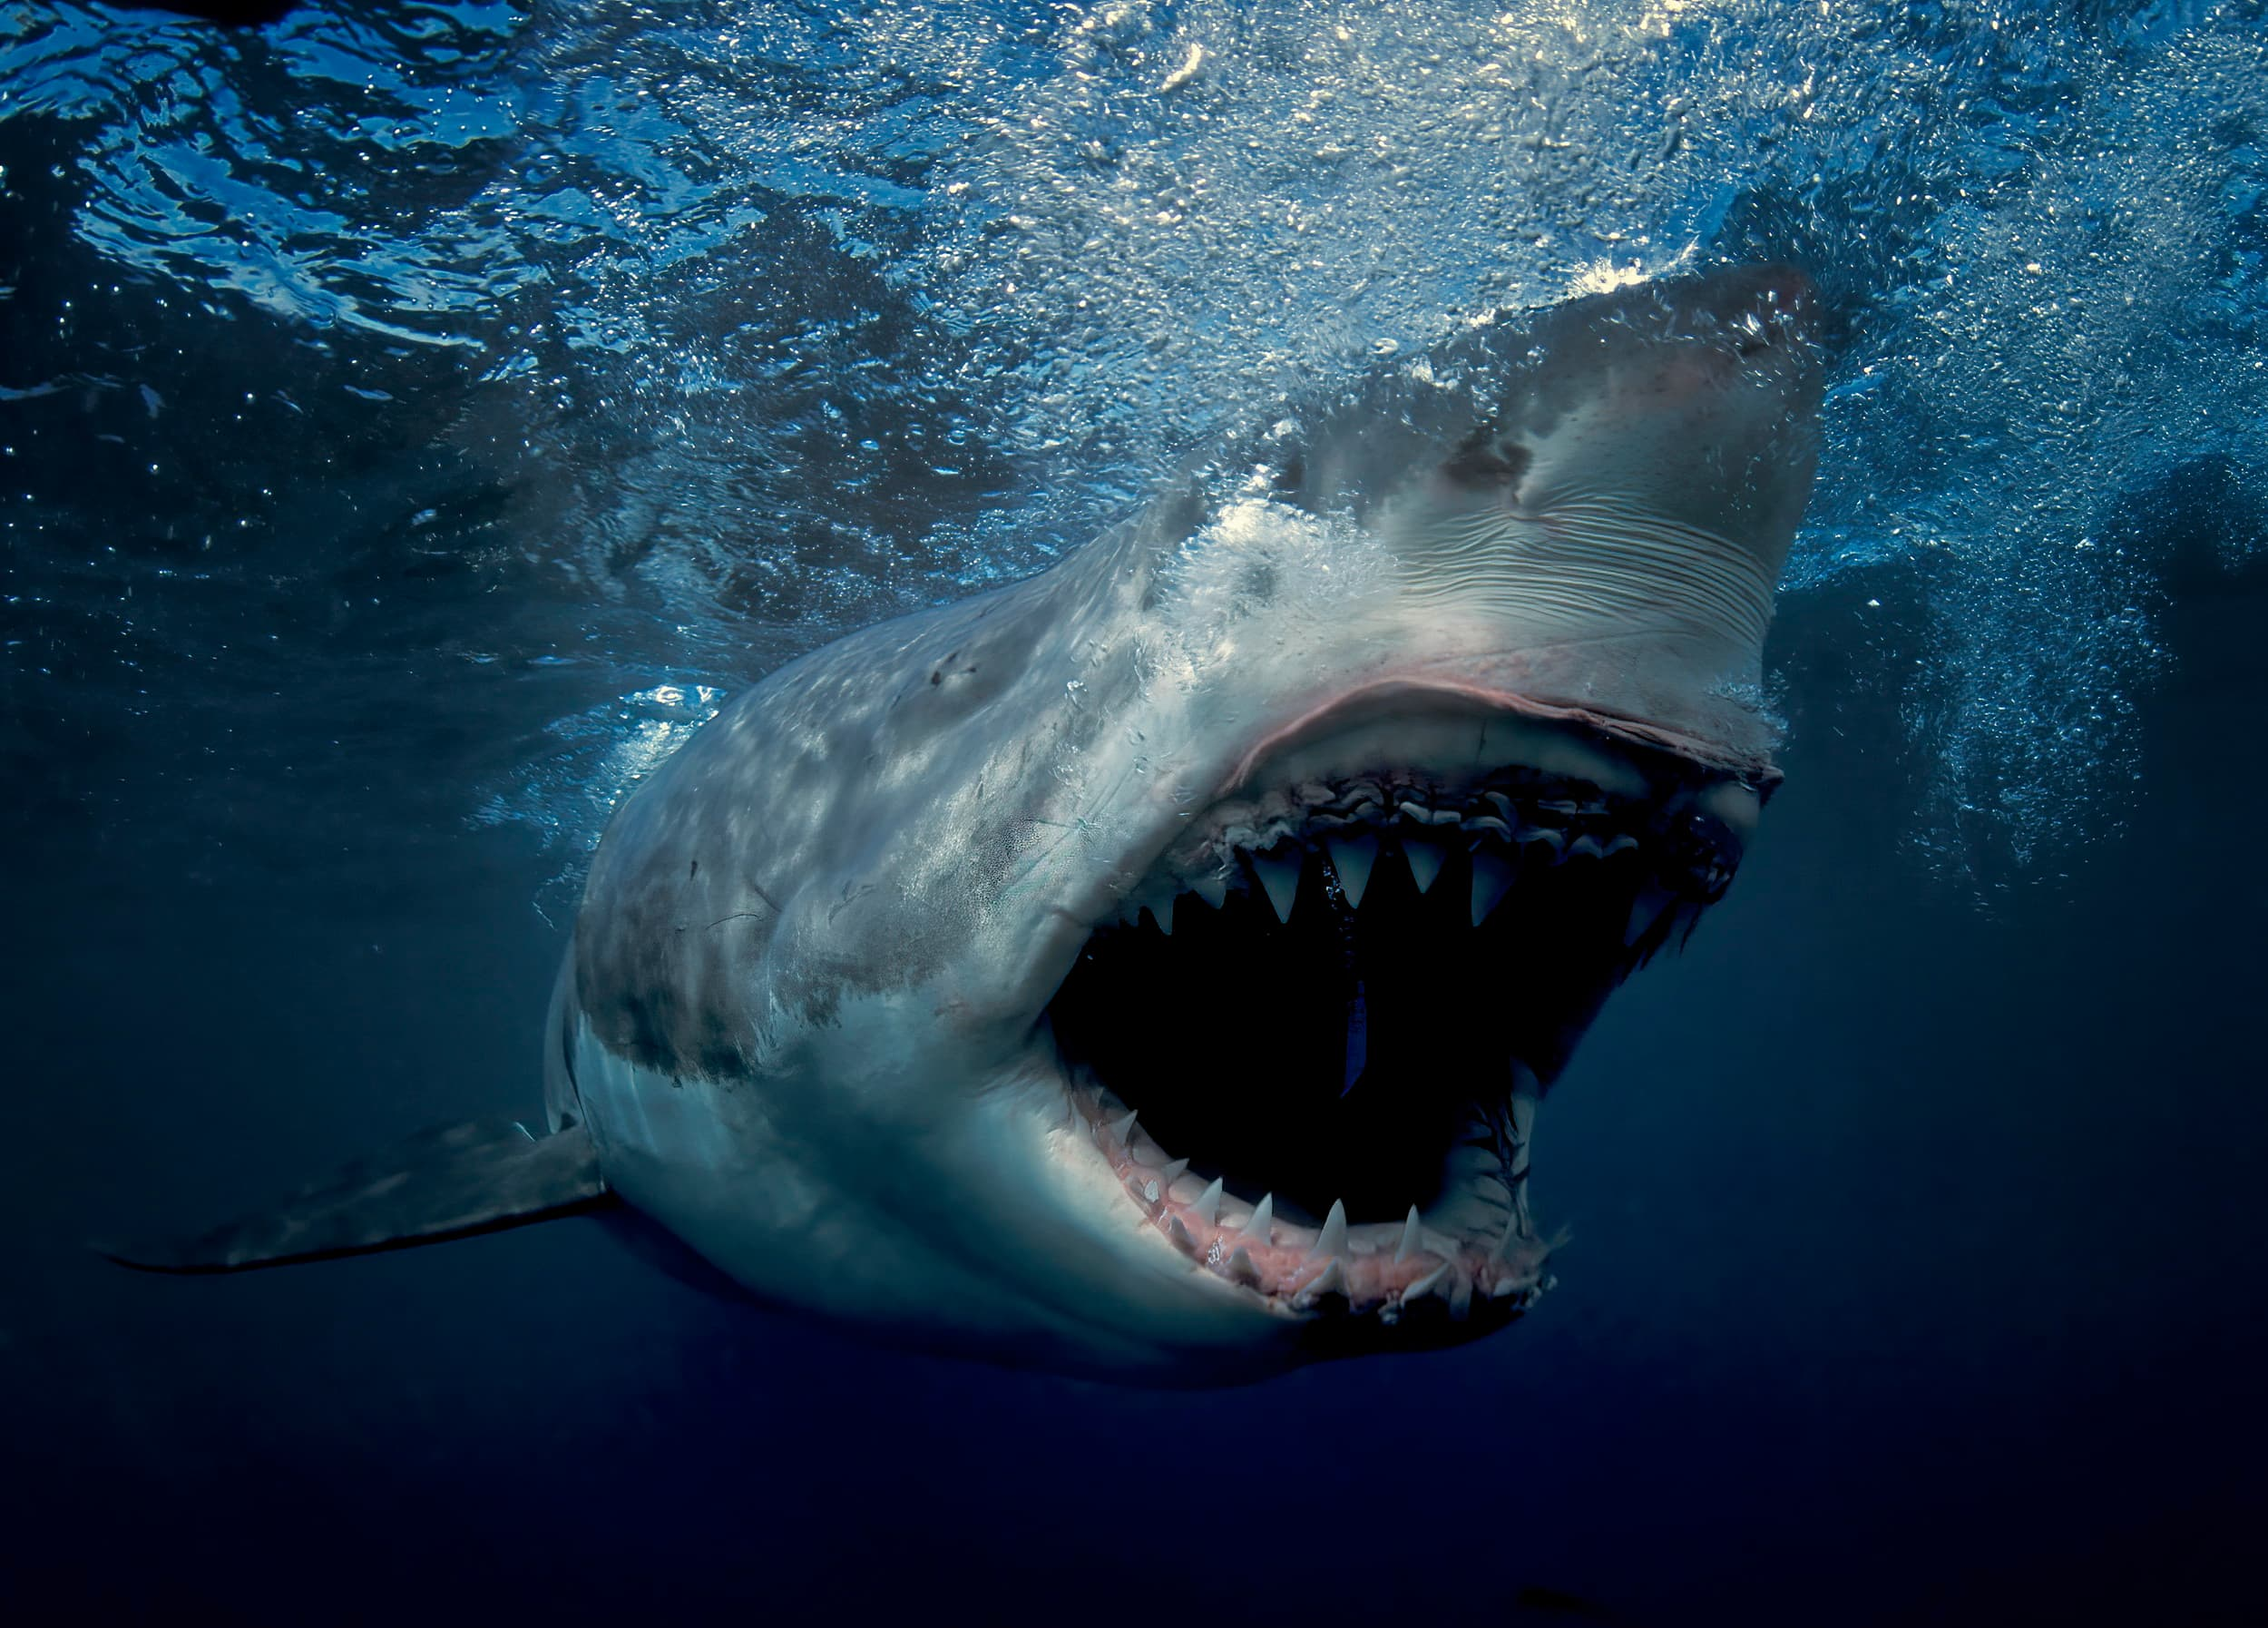 Great white in full attack mode